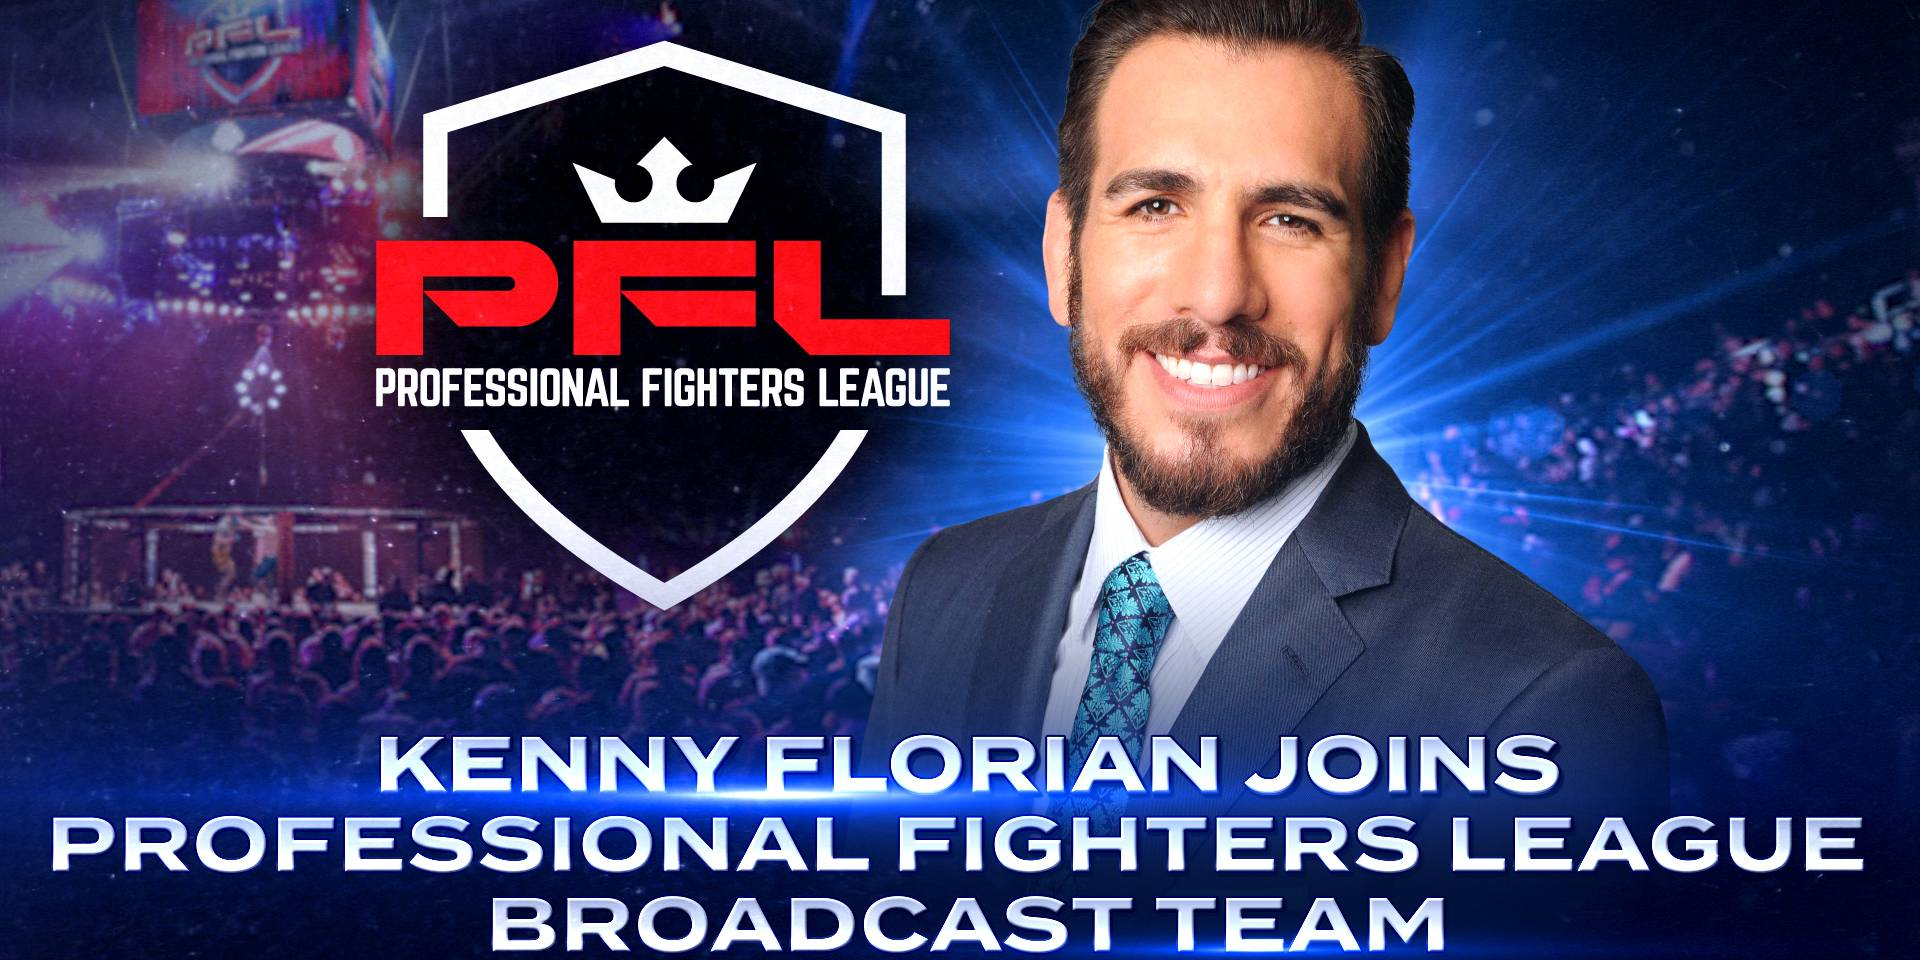 KENNY FLORIAN JOINS PROFESSIONAL FIGHTERS LEAGUE BROADCAST TEAM